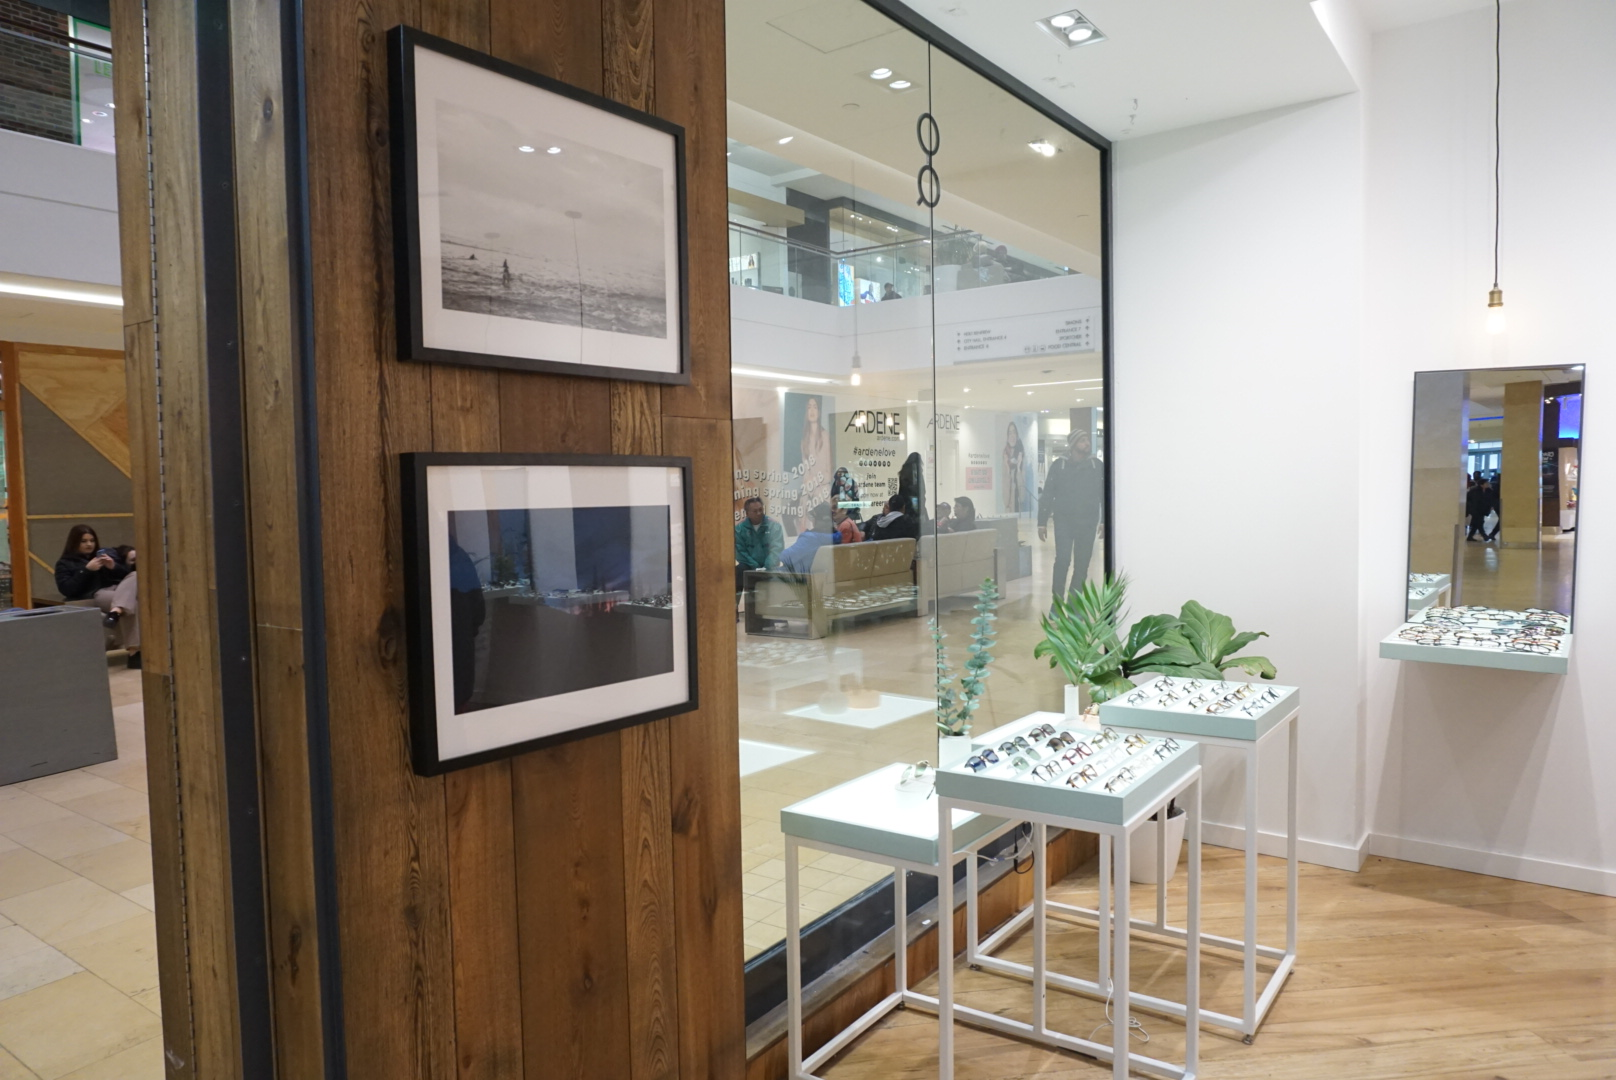 Ollie Quinn - Framed prints showcased for the month of March 2018 for International Women's Day. Showcased at the Ollie Quinn Square One location in Missisauga, ON, Canada.